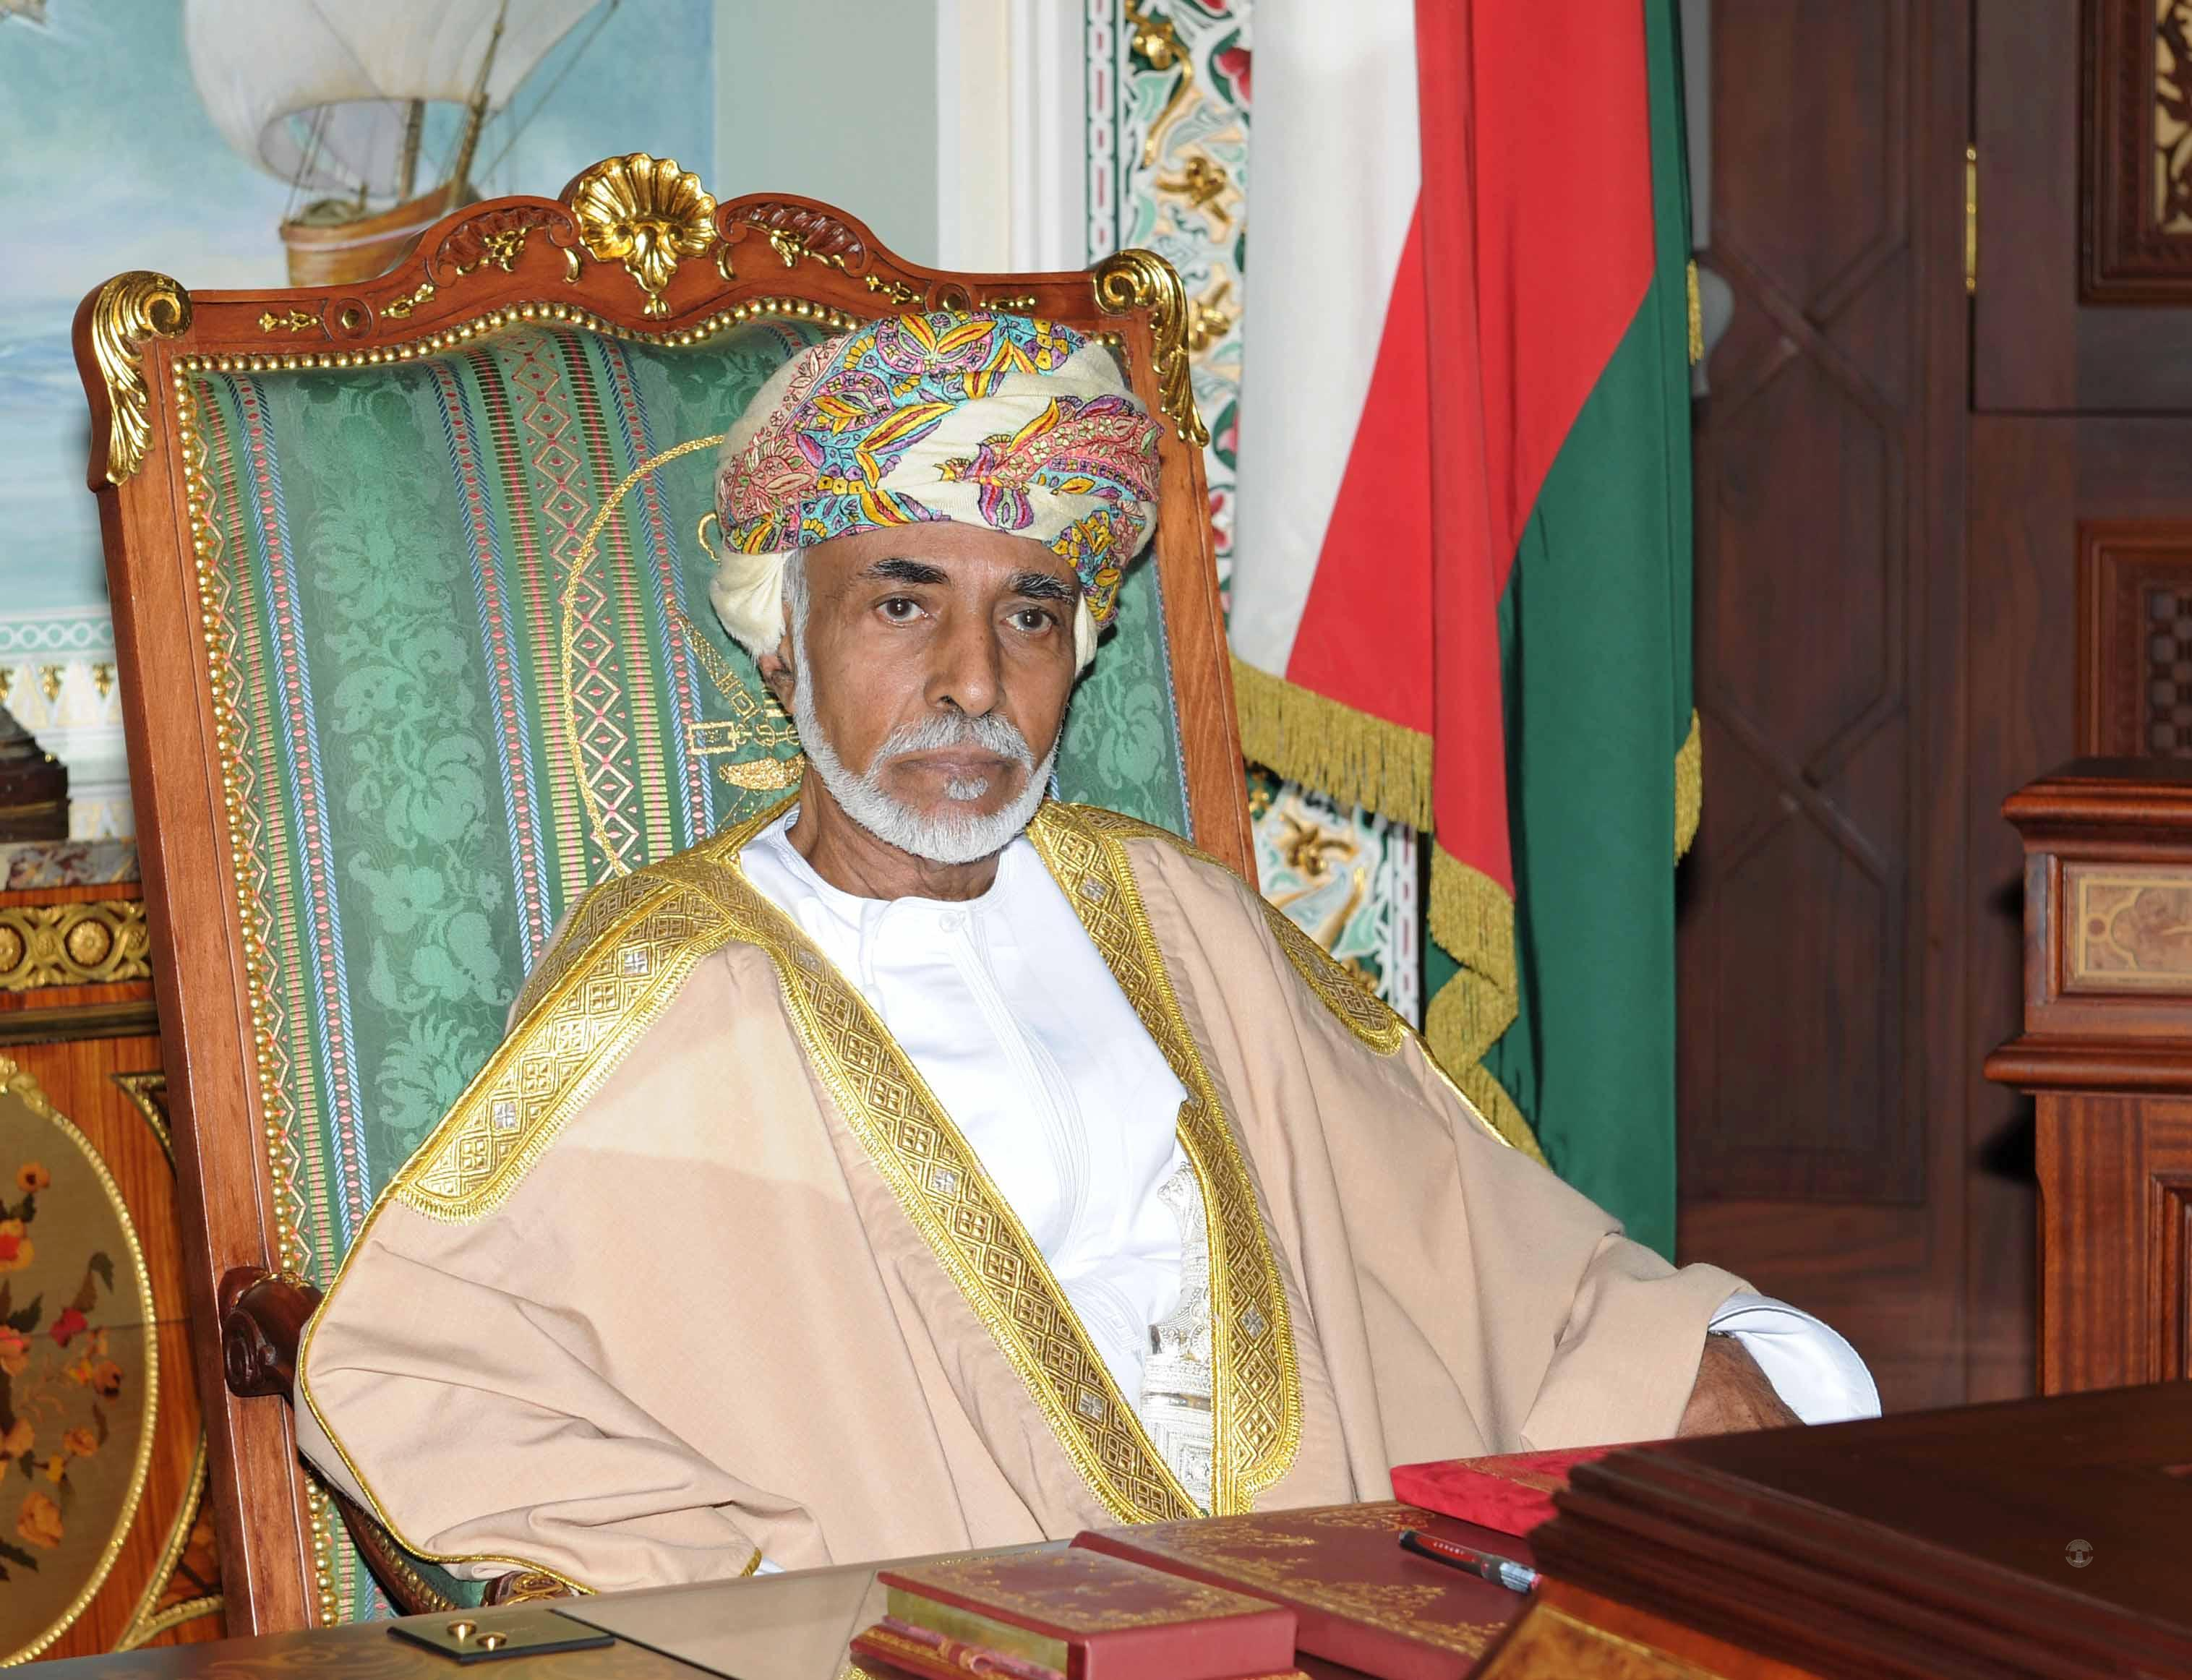 His Majesty Sultan Qaboos receives thanks from Egypt, Jordan